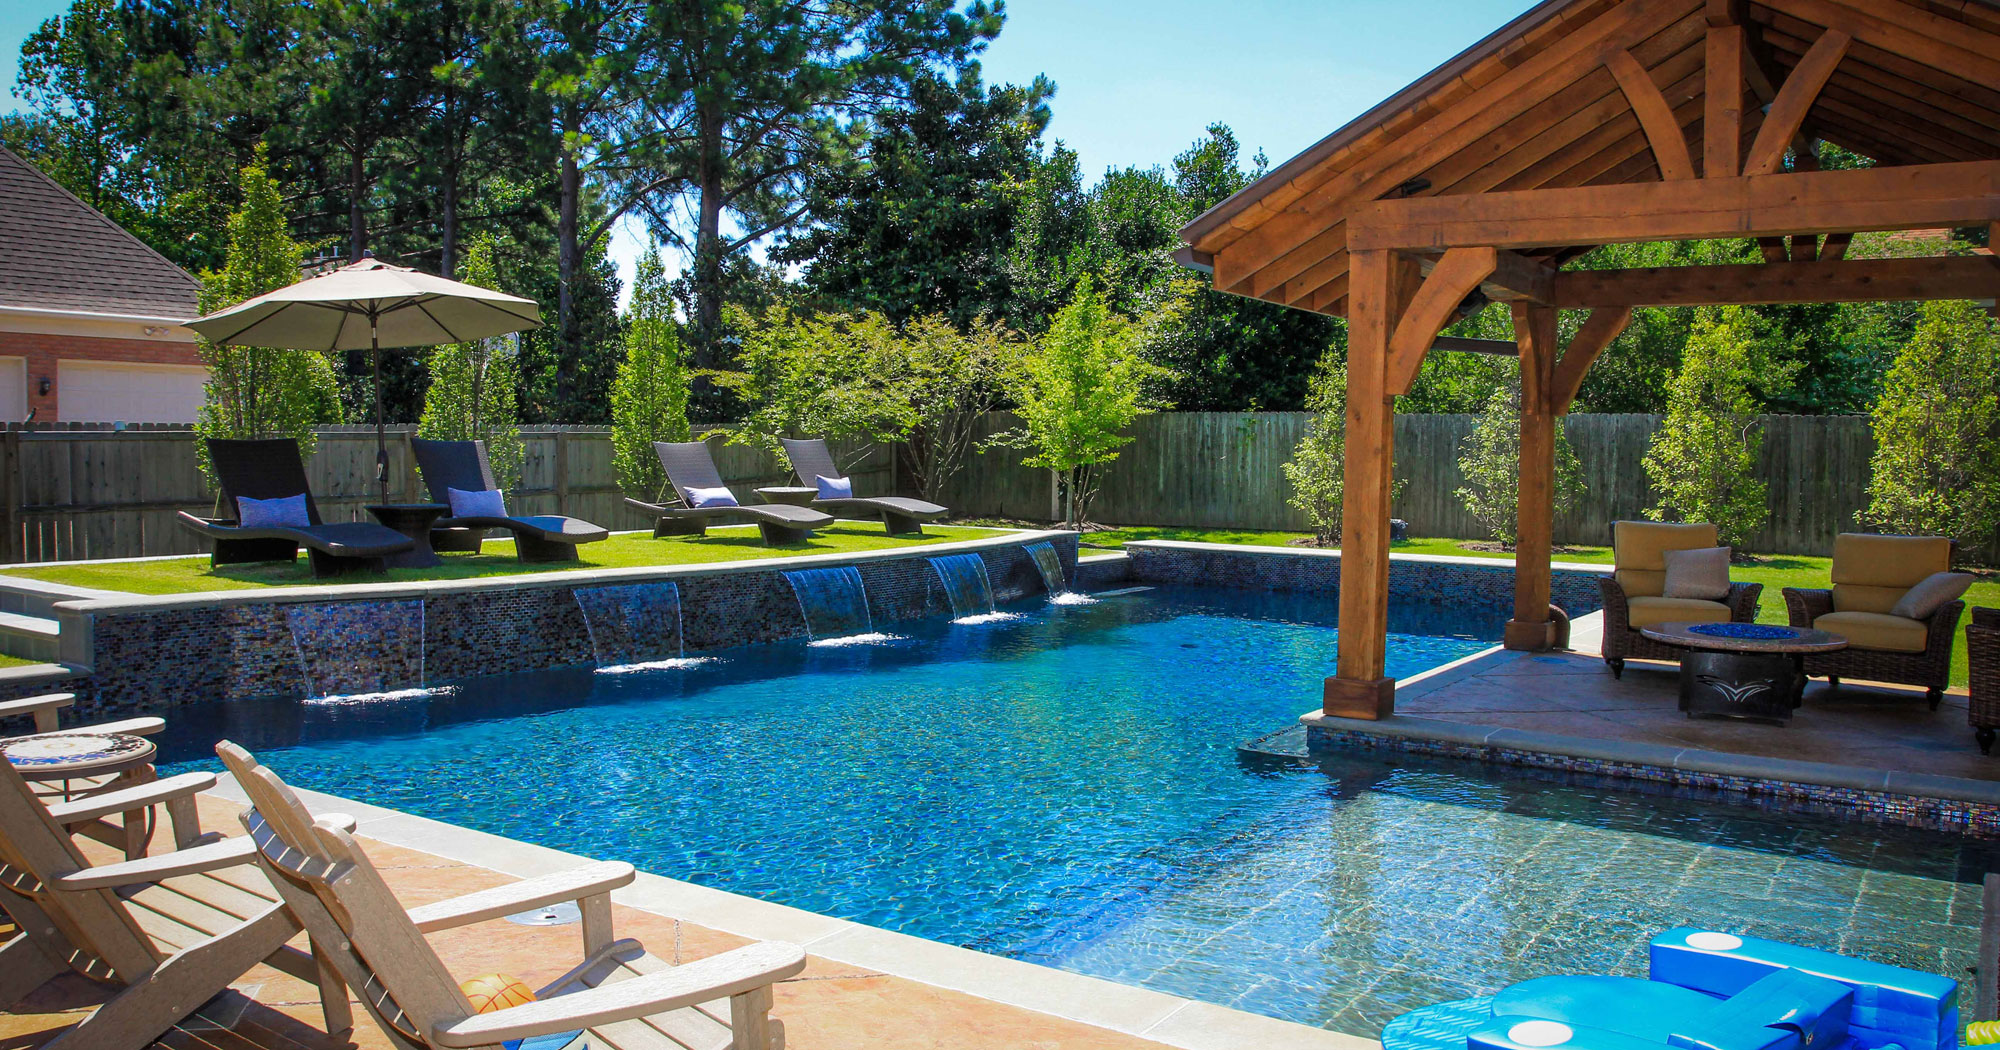 Design Pool Ideas backyard pool ideas to make your family time enjoyable carehomedecor enjoyable